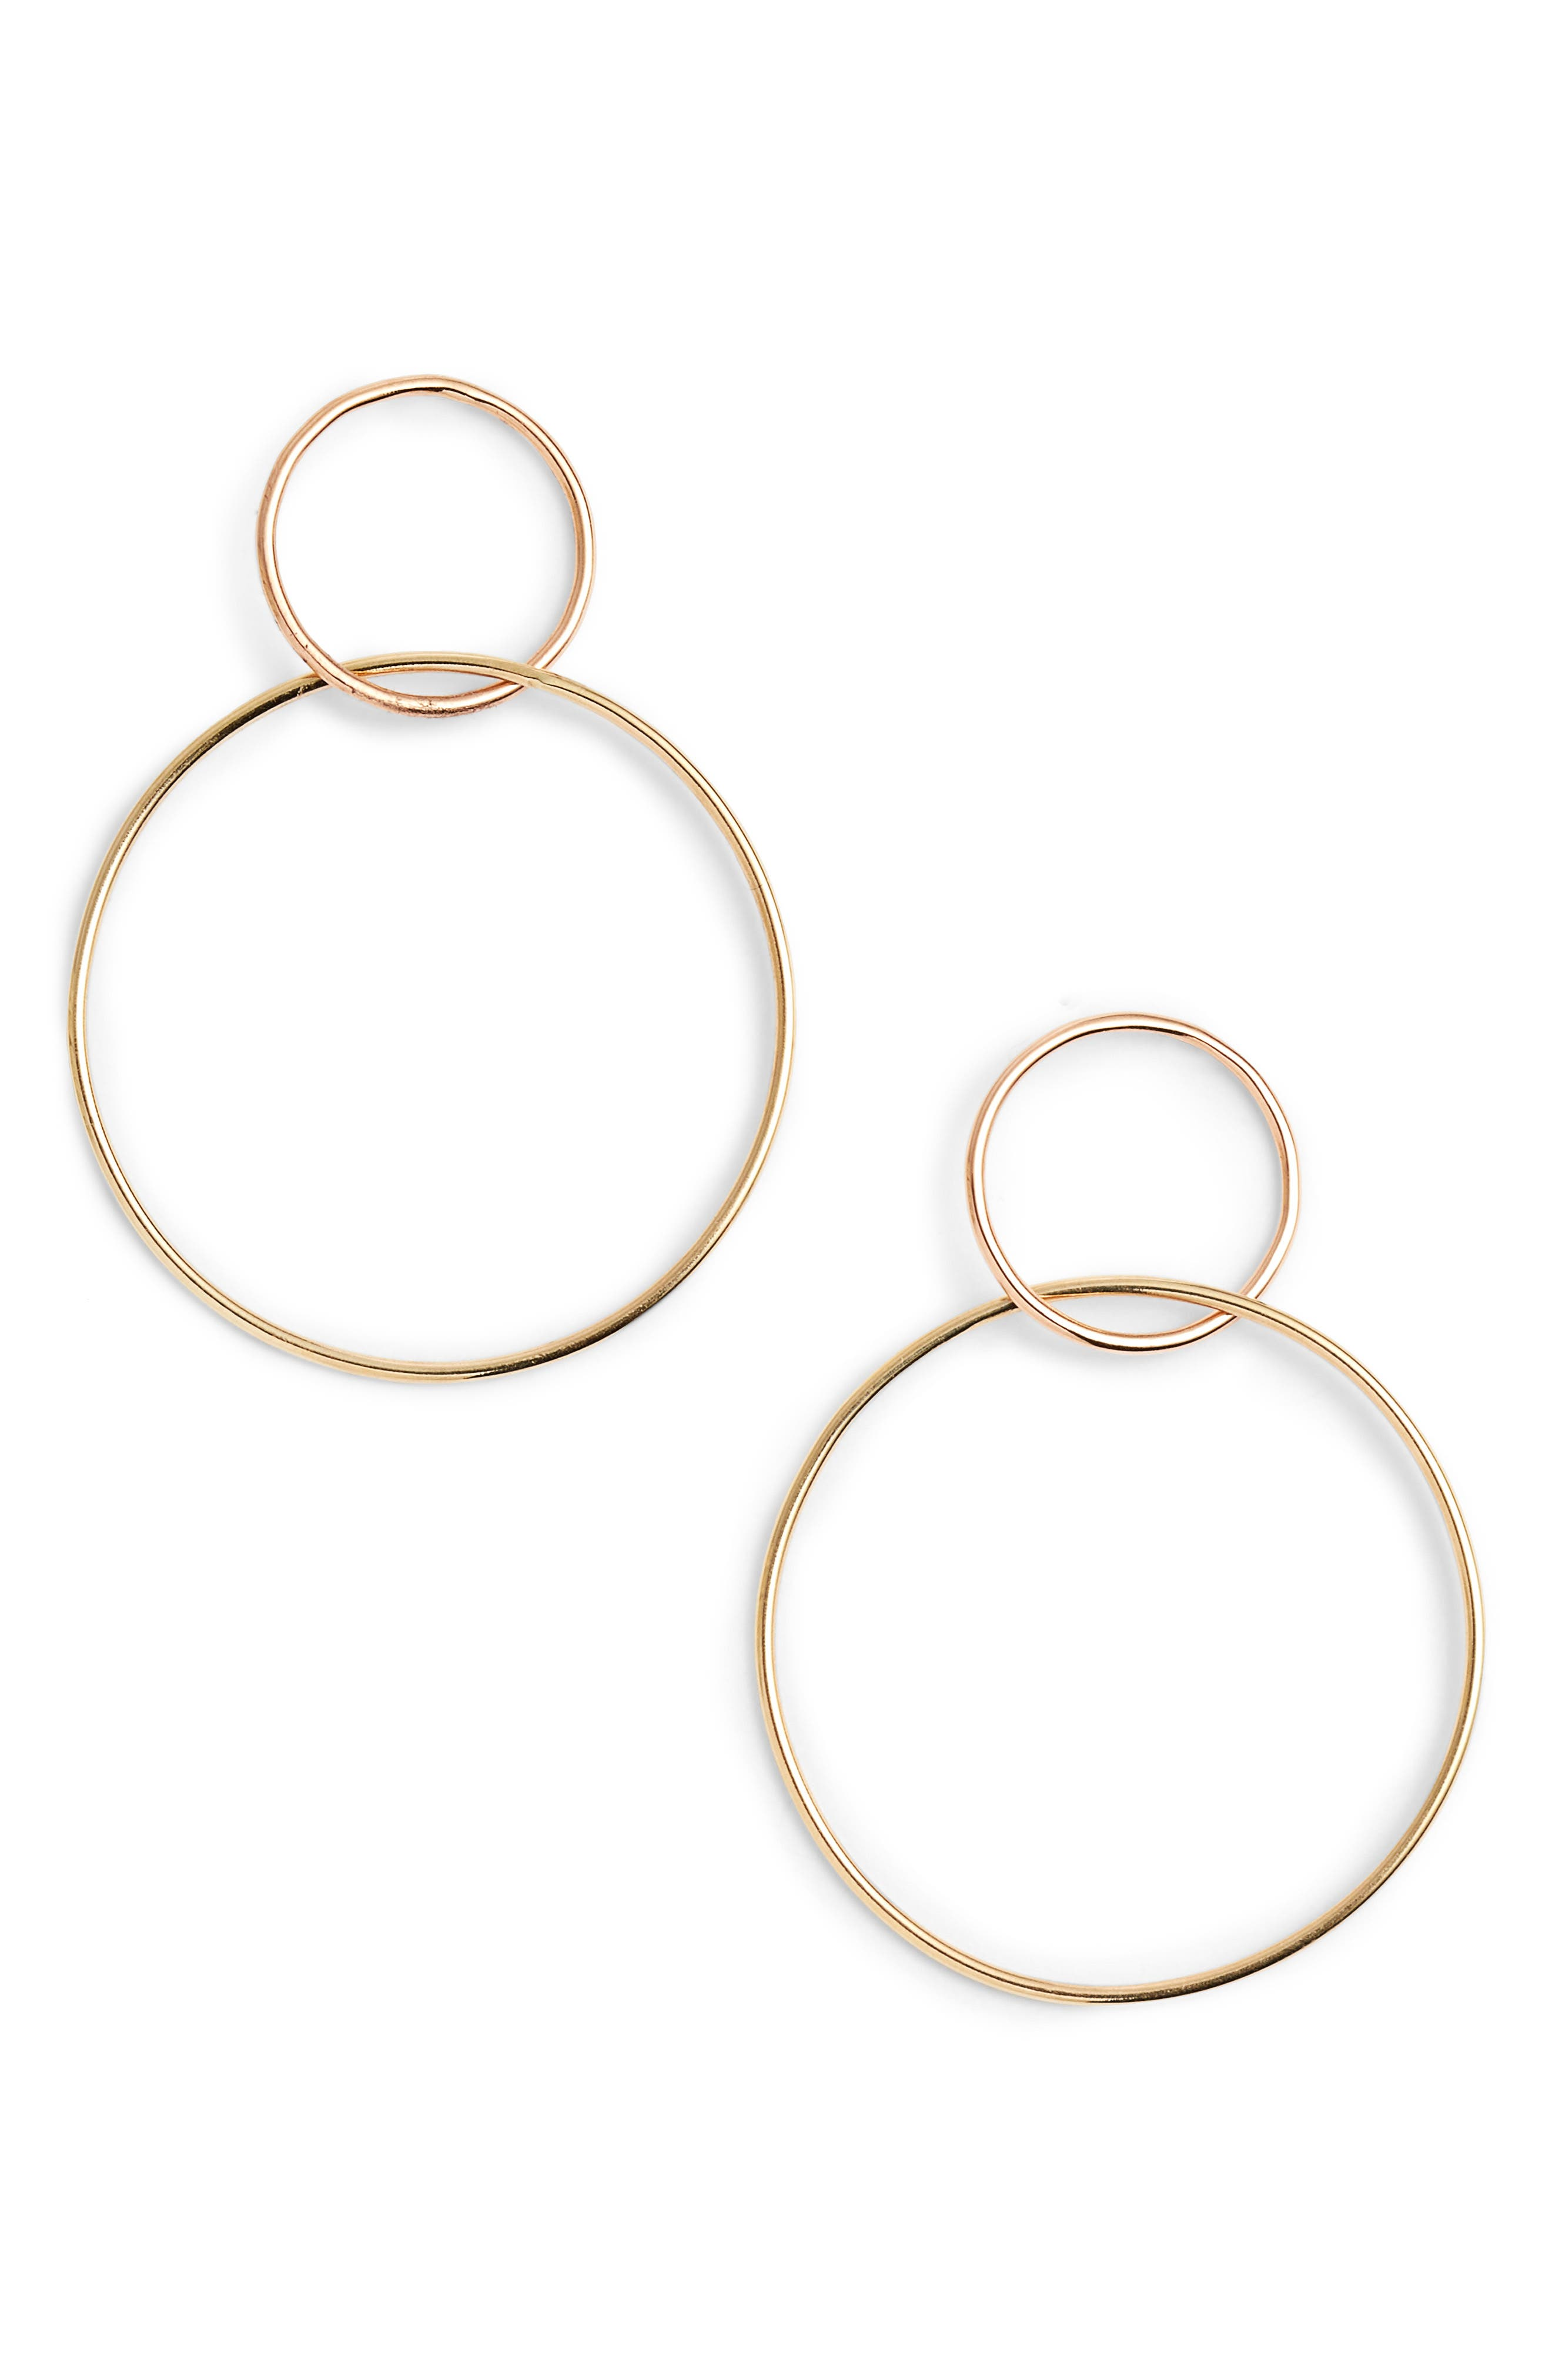 Lana Jewelry Two Tone Double Loop Earrings